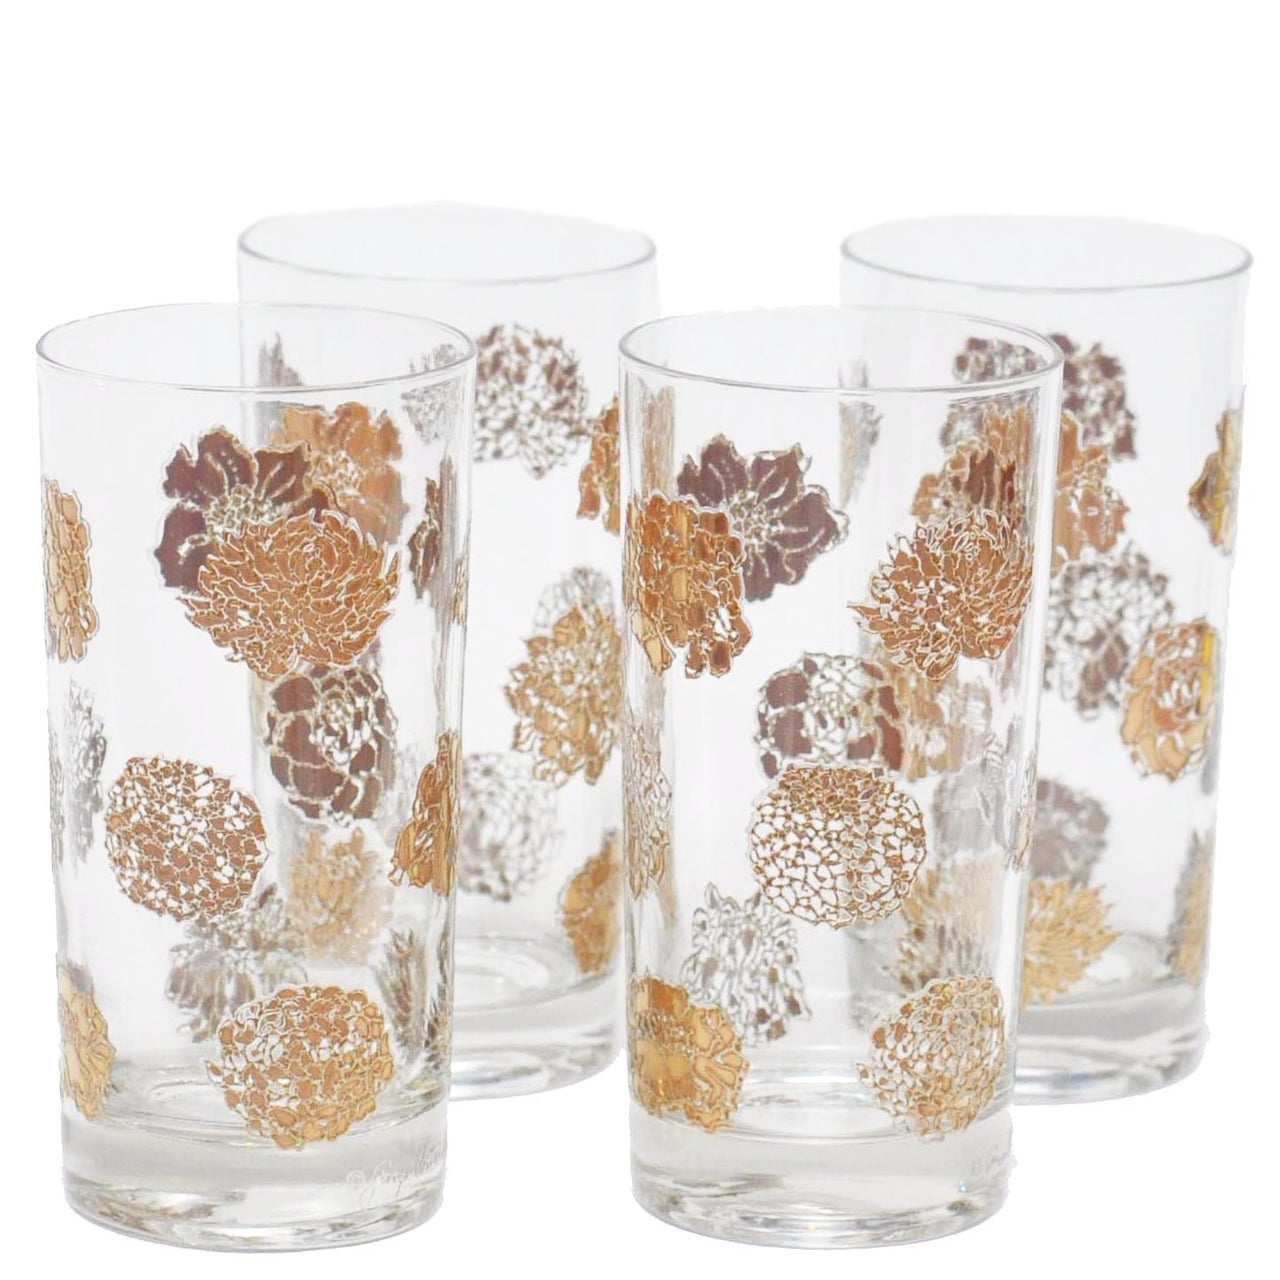 G. Briard Gold Flowers Collins Glasses, The Hour Shop Vintage